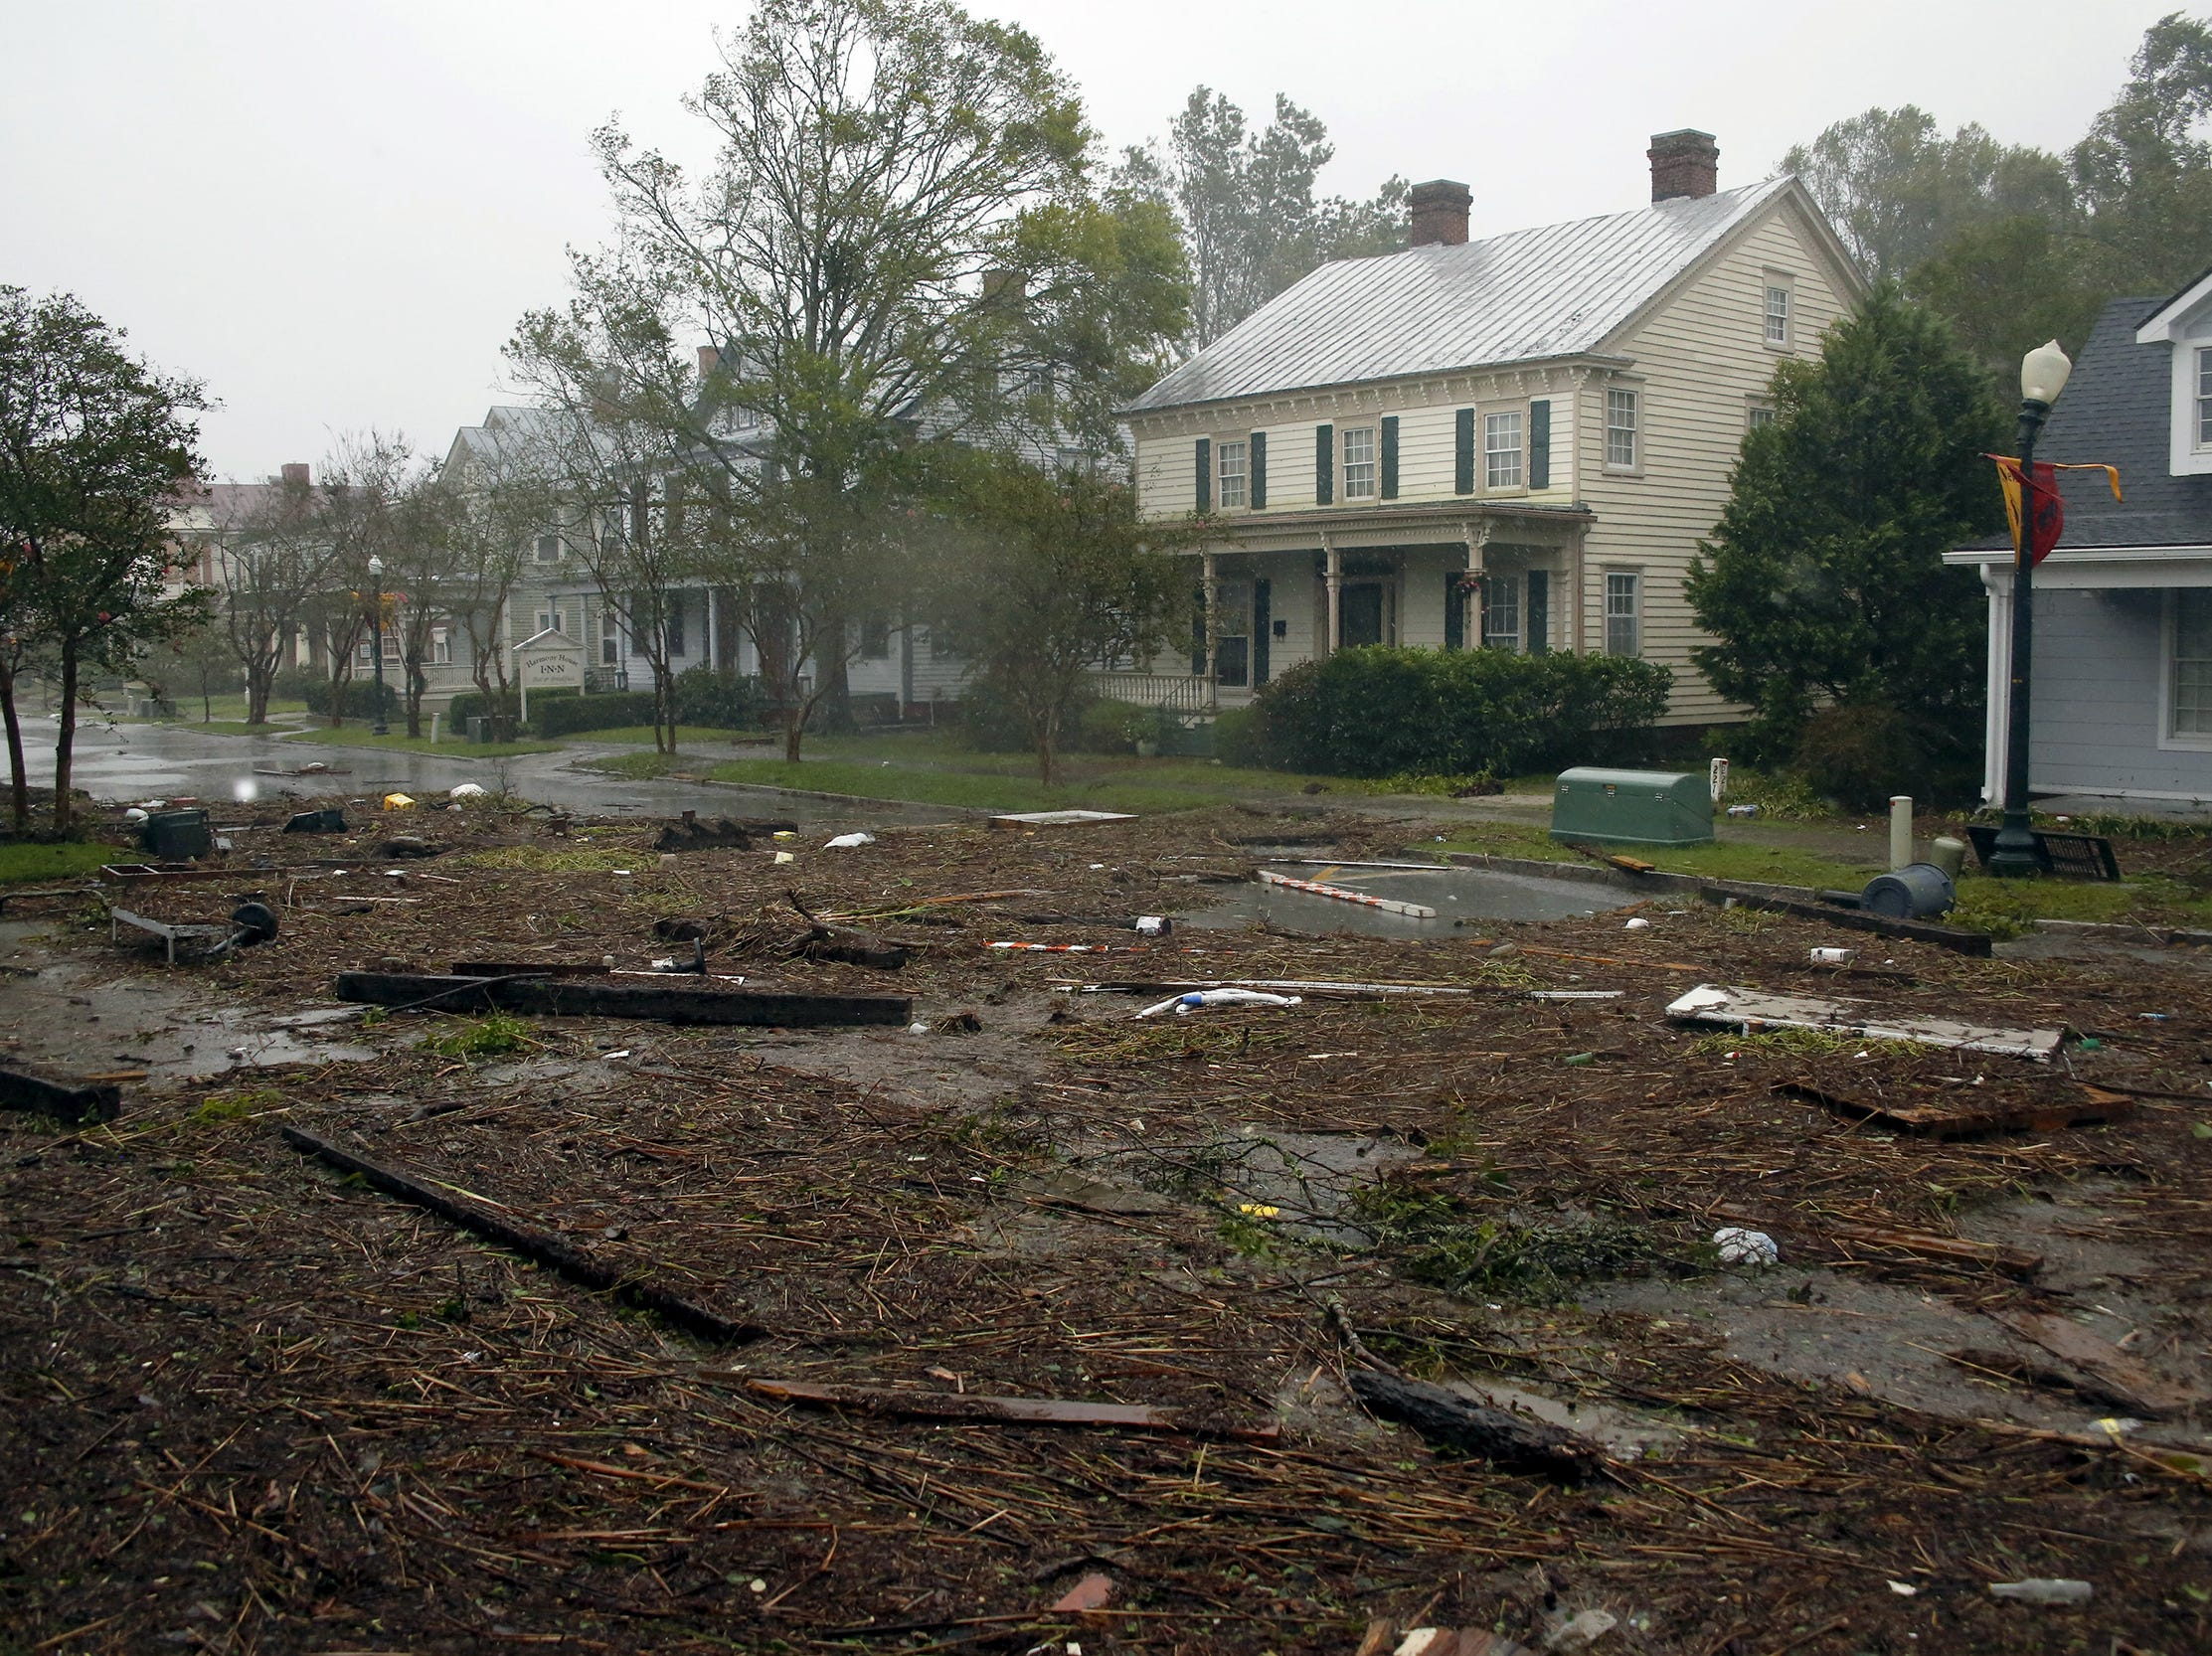 Debris from Hurricane Florence covers a street in downtown New Bern, N.C., on Friday, Sept. 14, 2018. (AP Photo/Chris Seward)